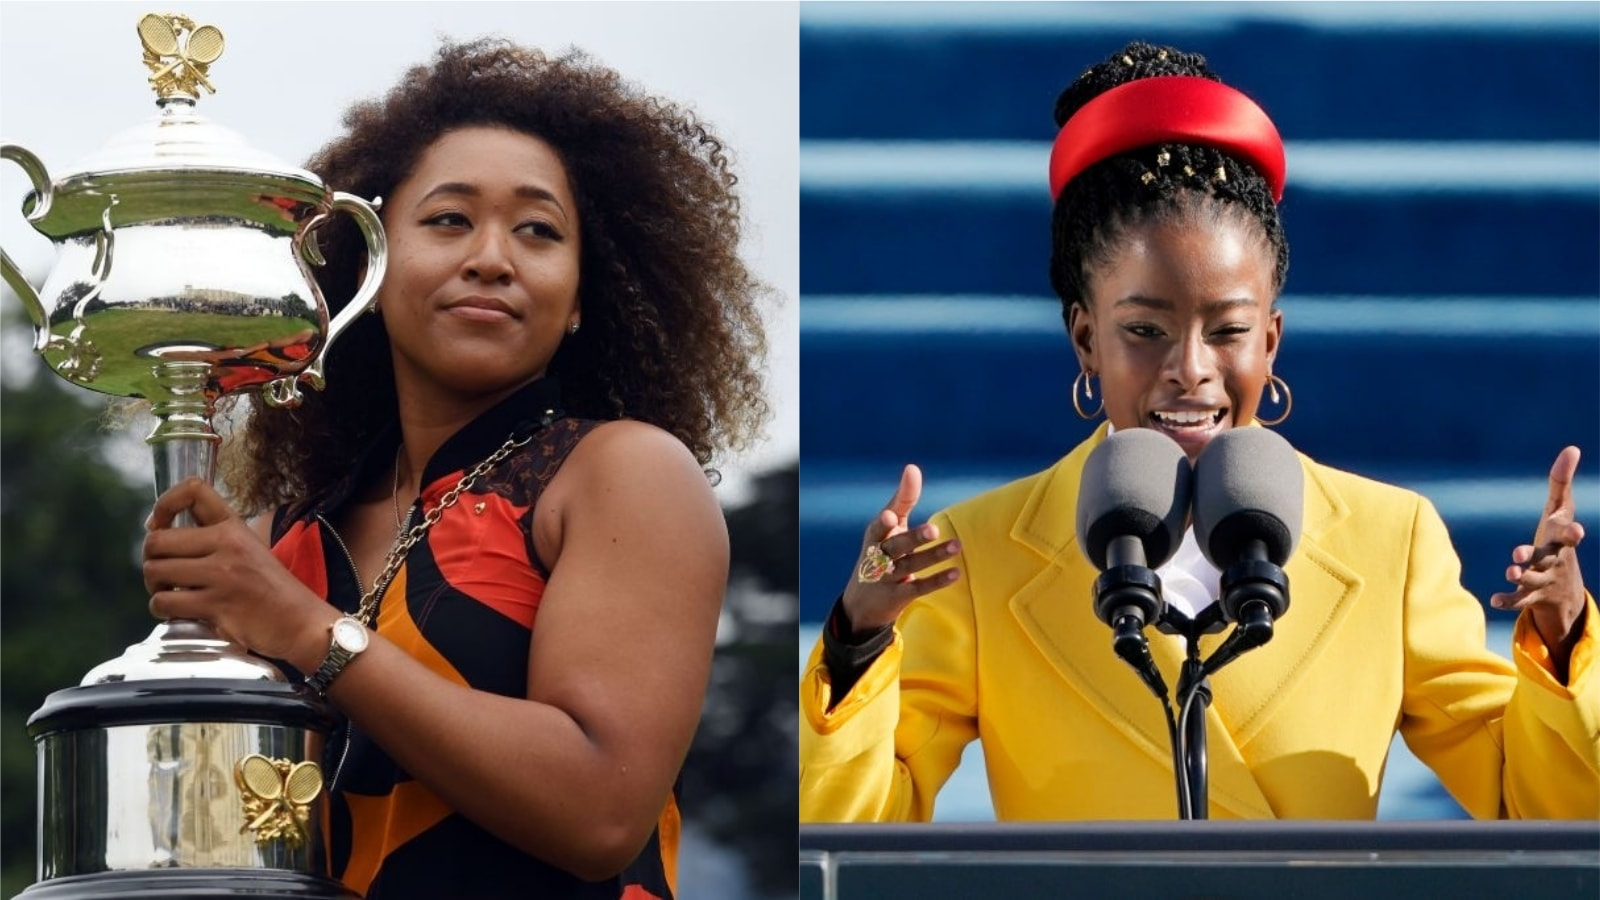 Naomi Osaka And Amanda Gorman To Deliver More Fashion Moments As Co-Chairs Of The Met Gala